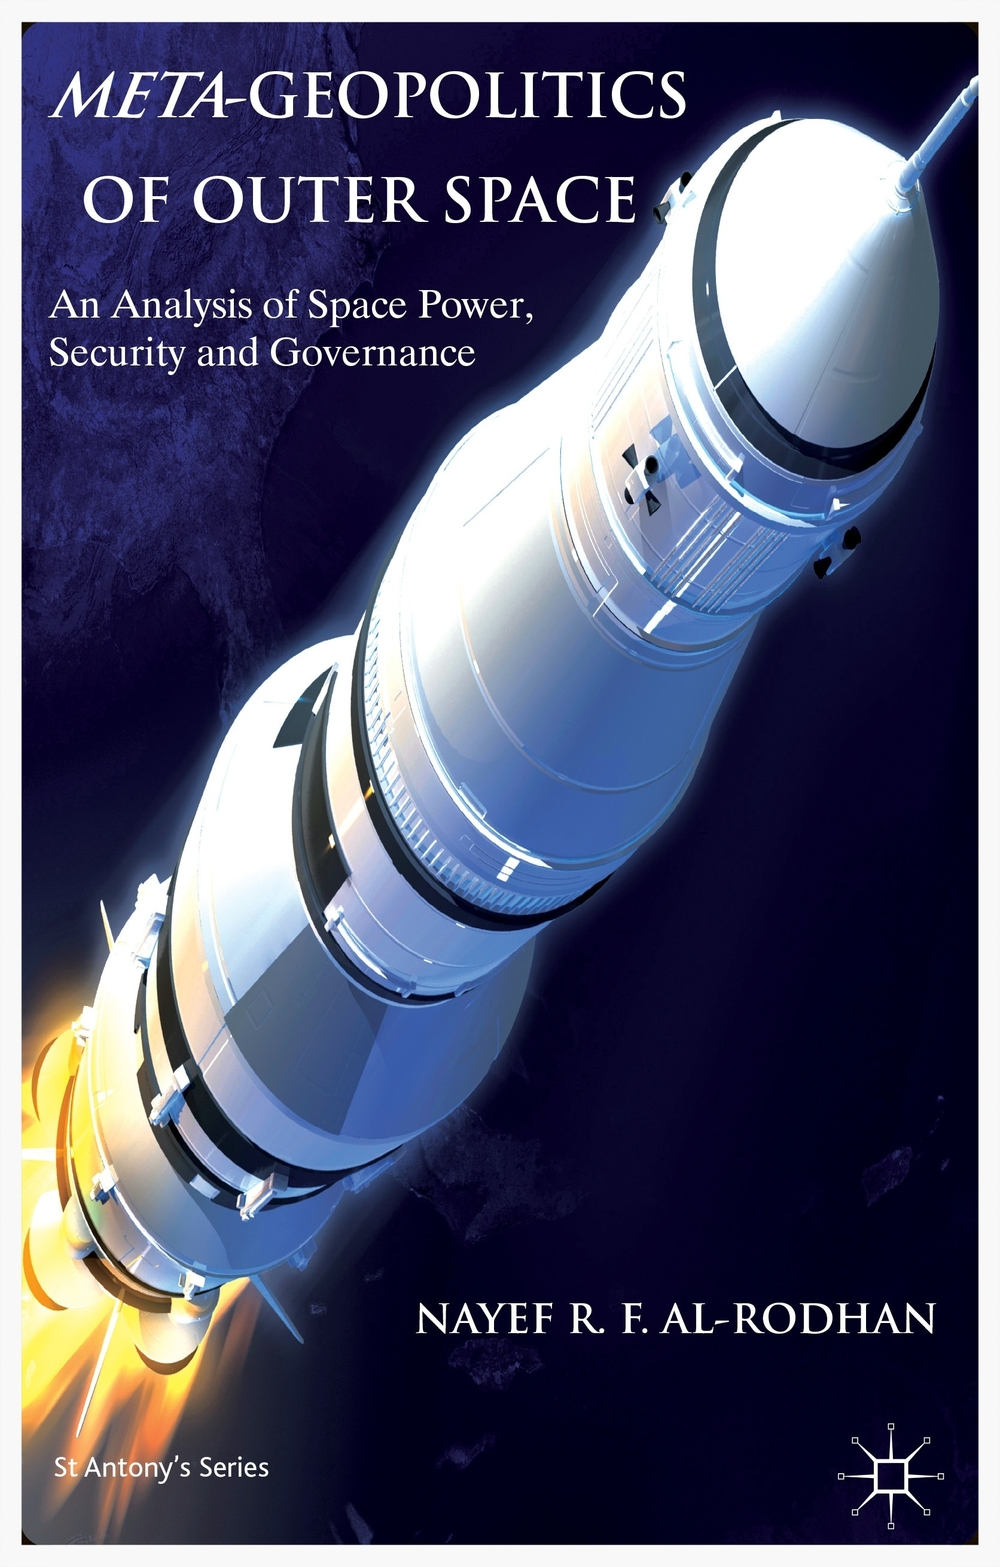 Copy of META-GEOPOLITICS OF OUTER SPACE: An Analysis of Space Power, Security and Governance (St Antony's Series)